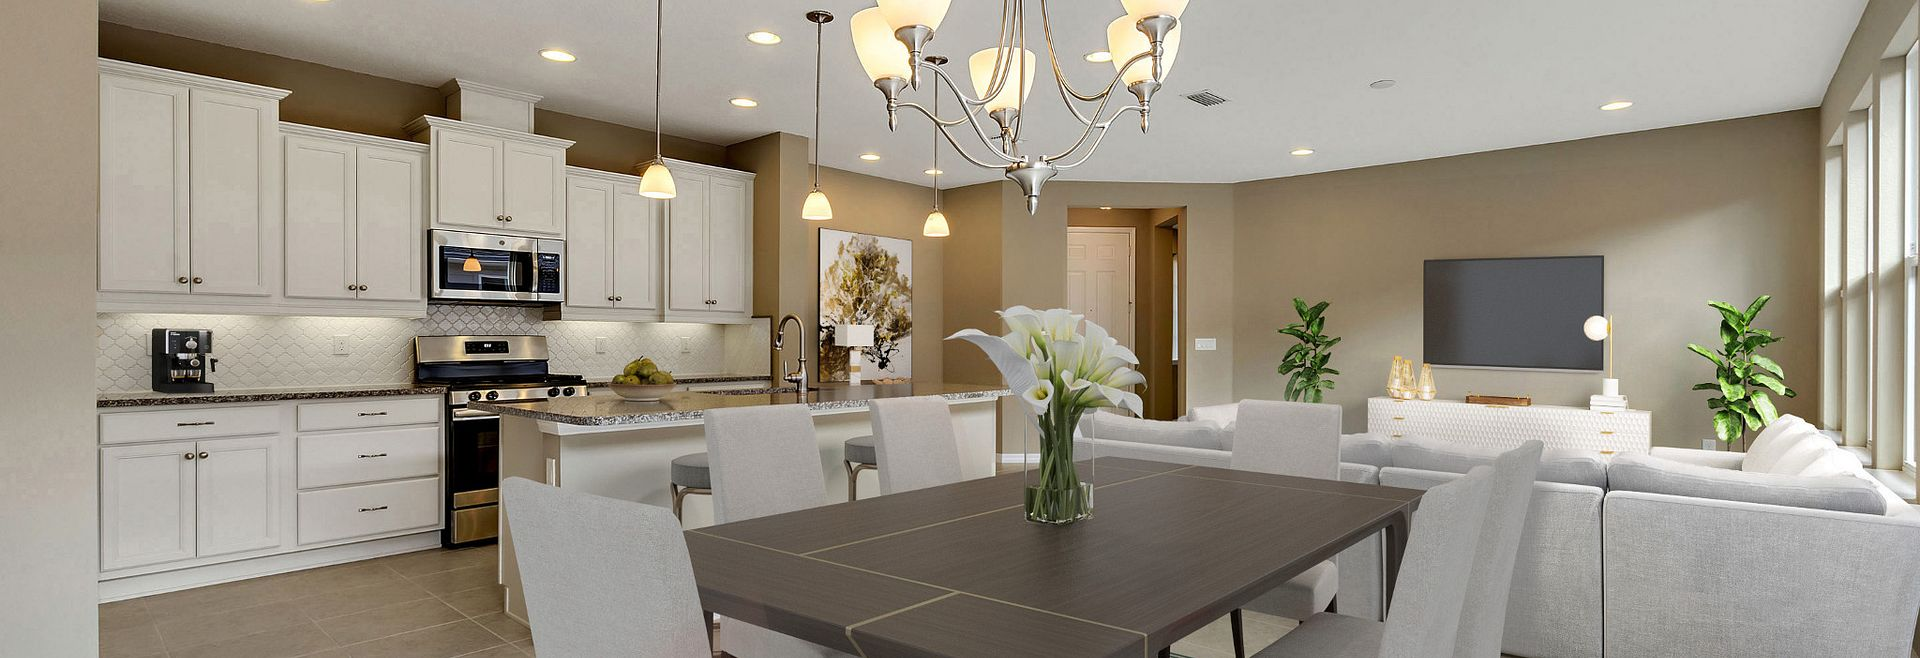 Trilogy Orlando Quick Move In Home Amalfi Plan Virutally Staged Great Room